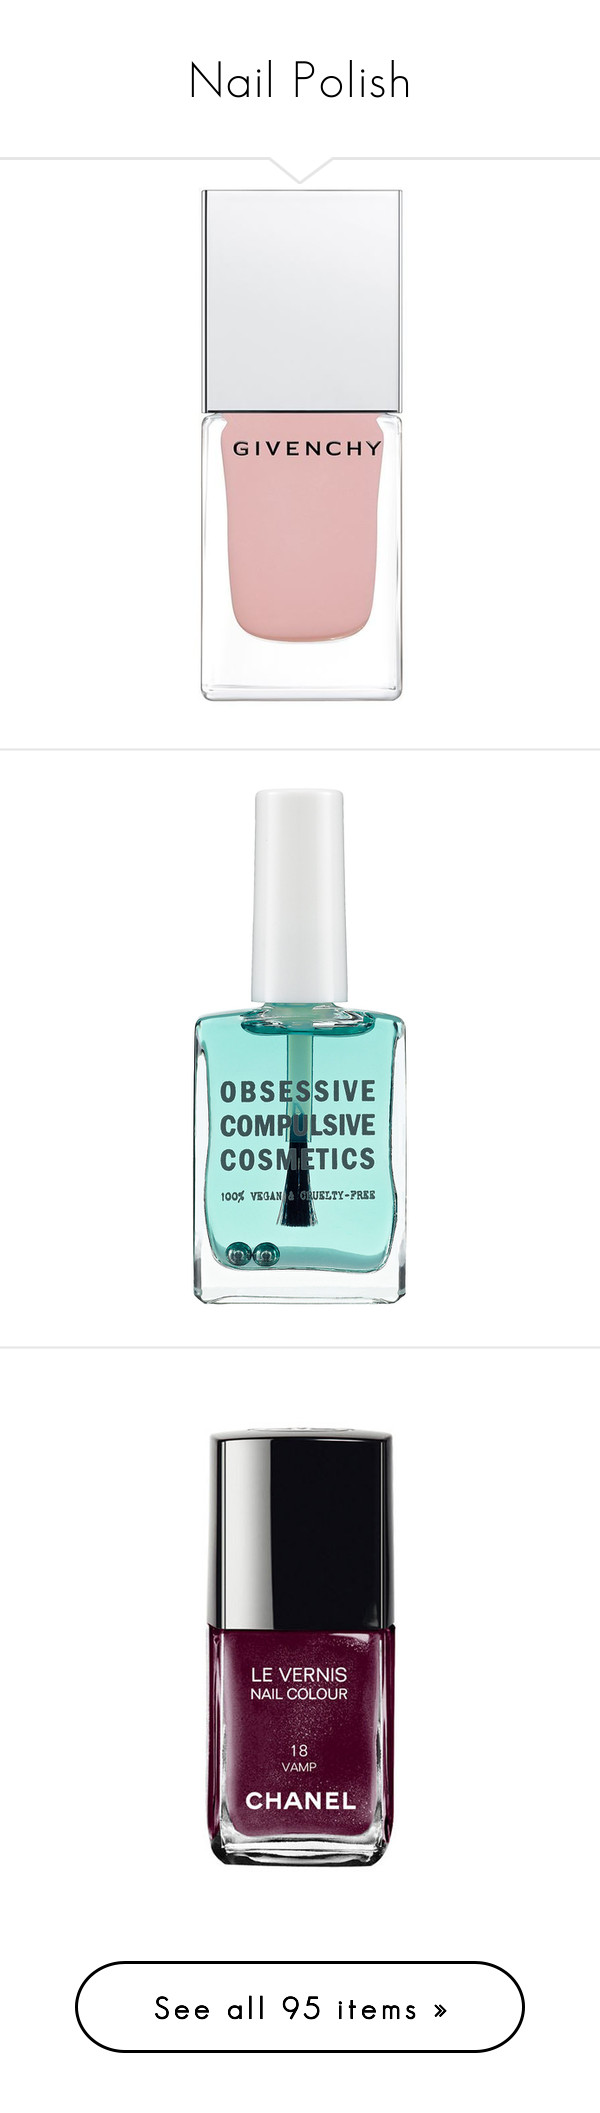 """""""Nail Polish"""" by ouchm4rvel ❤ liked on Polyvore featuring beauty products, nail care, nail polish, makeup, beauty, nails, givenchy, givenchy nail polish, fillers and obsessive compulsive cosmetics nail lacquer"""